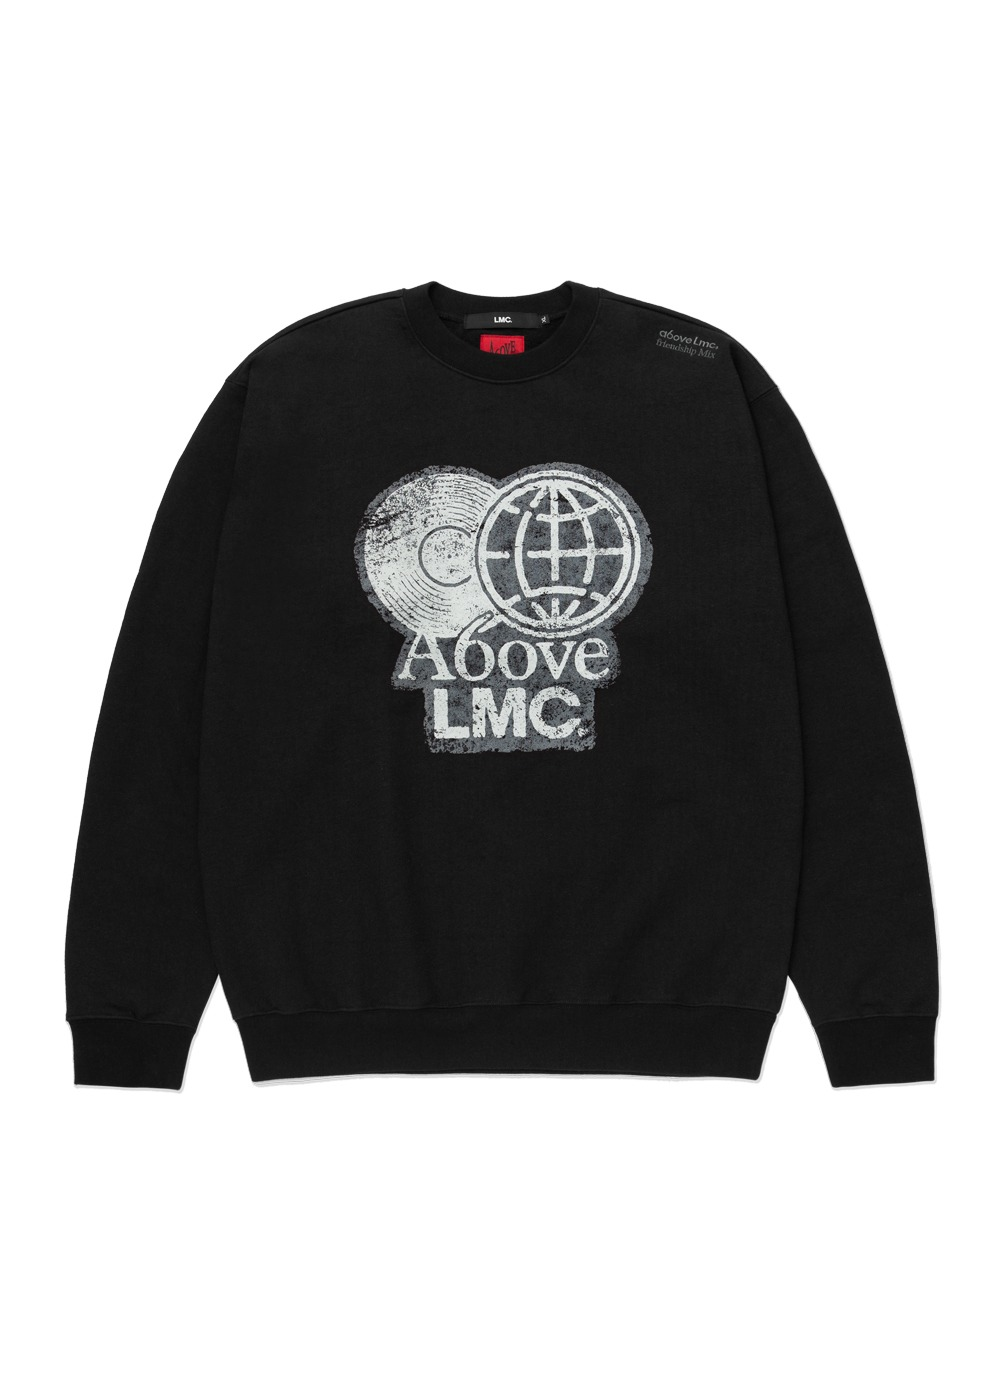 LMC X A6OVE FRIENDSHIP MIX SWEATSHIRT black